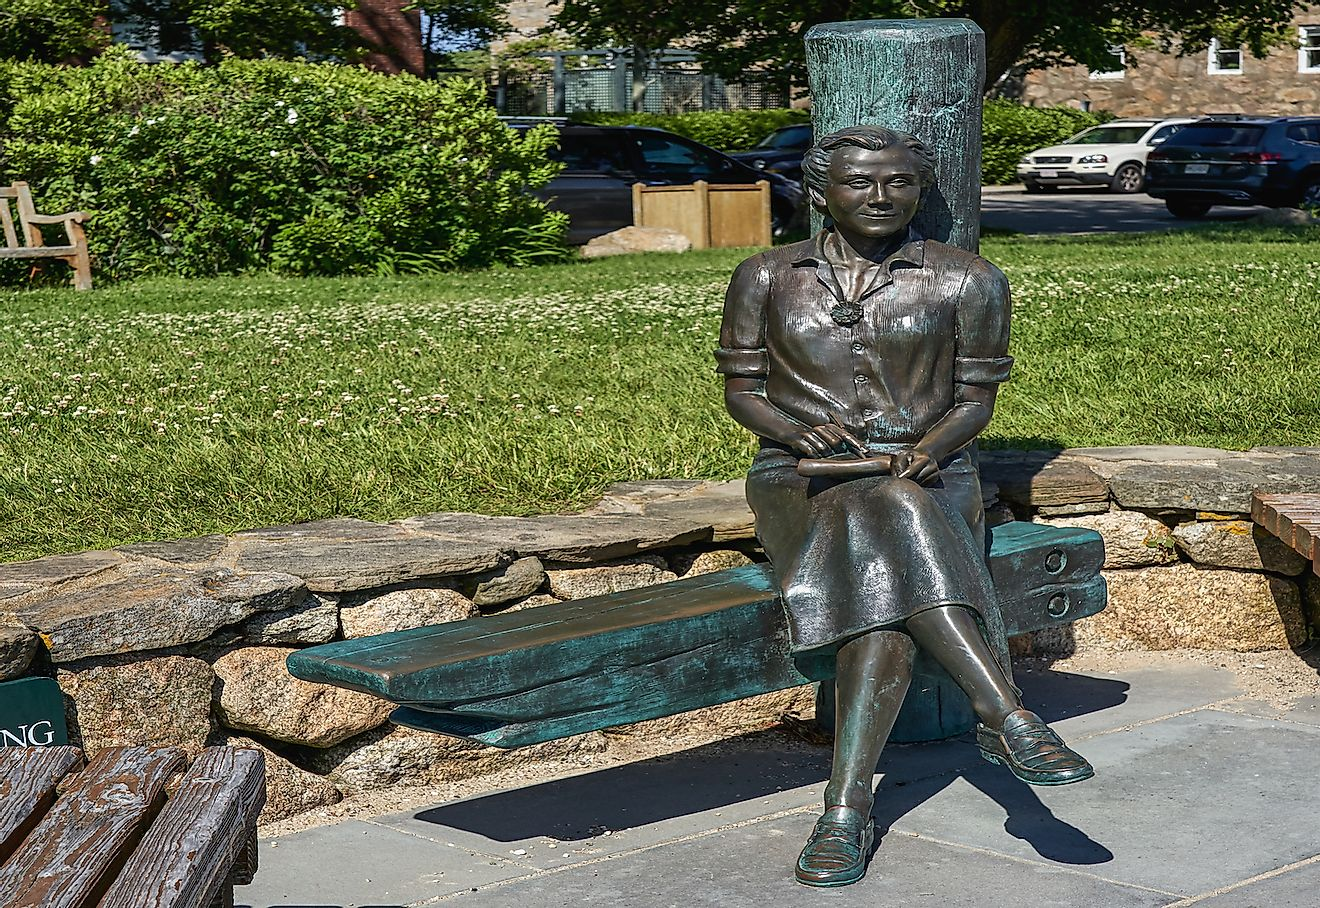 The statue of Rachel Carson author of Silent Spring sits at Waterfront Park.